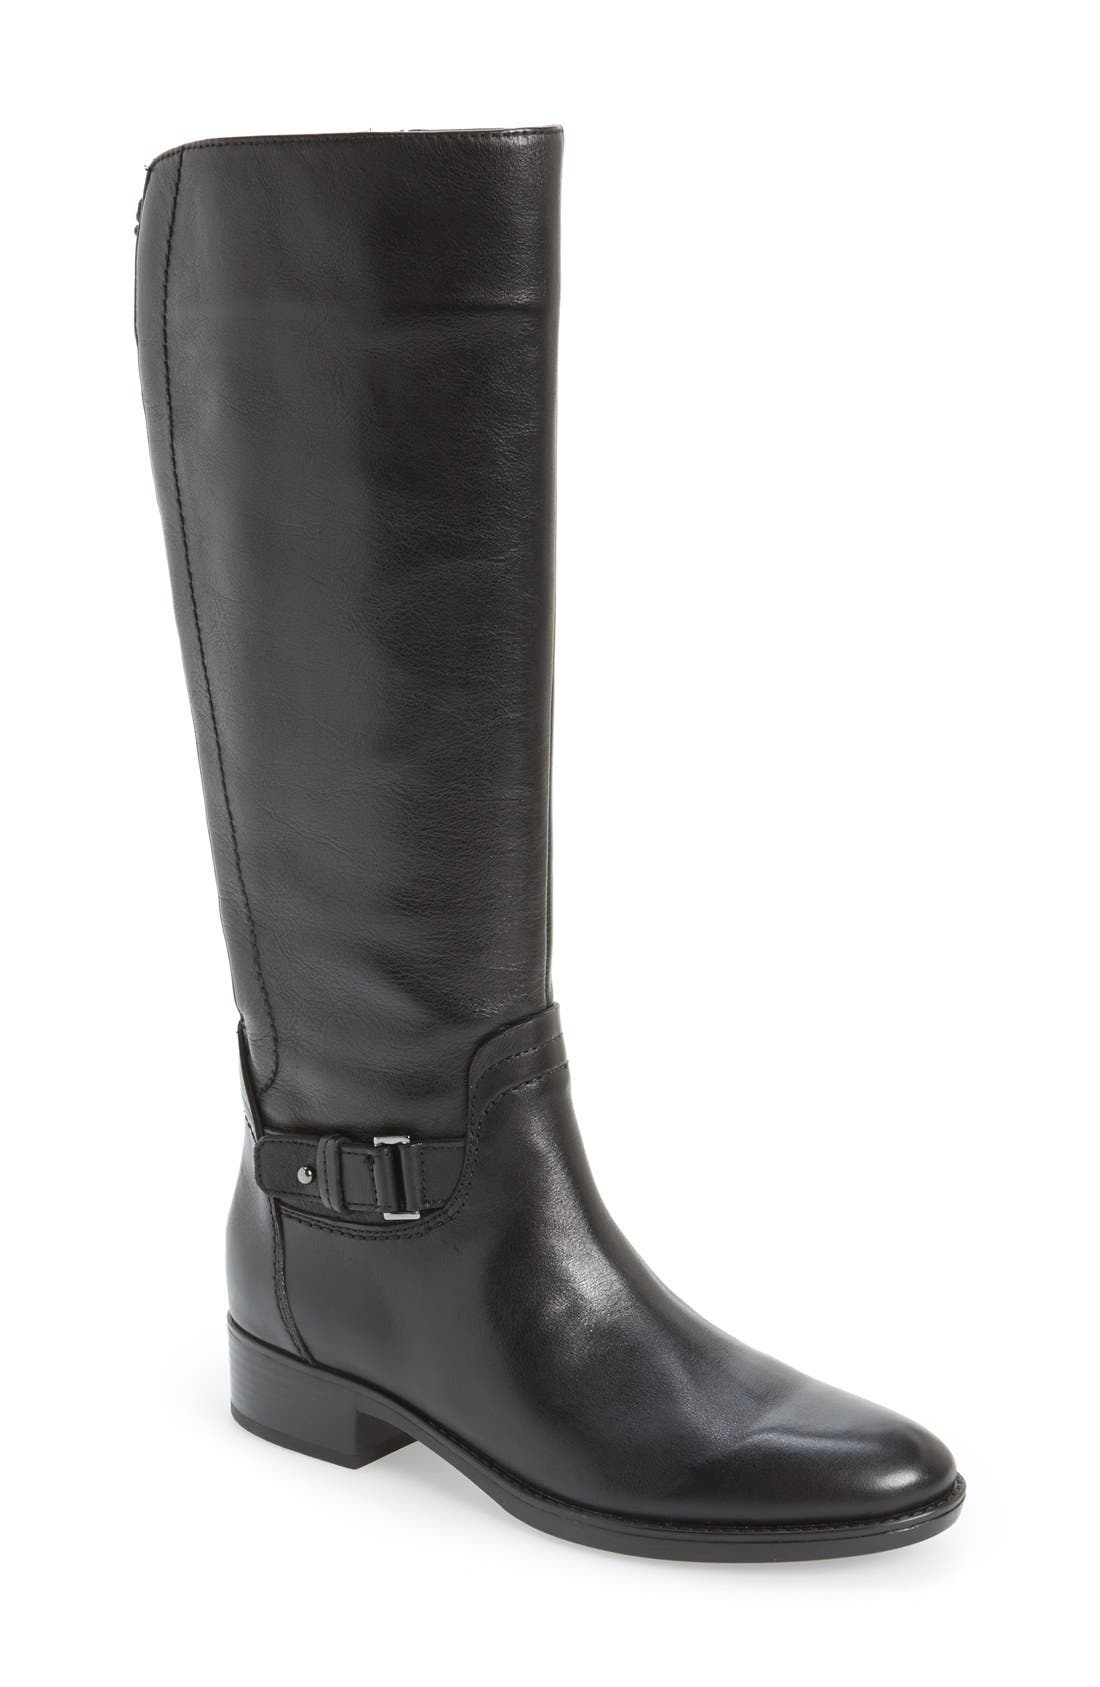 Main Image - Geox 'Felicity' Adjustable Shaft Tall Riding Boot (Women)